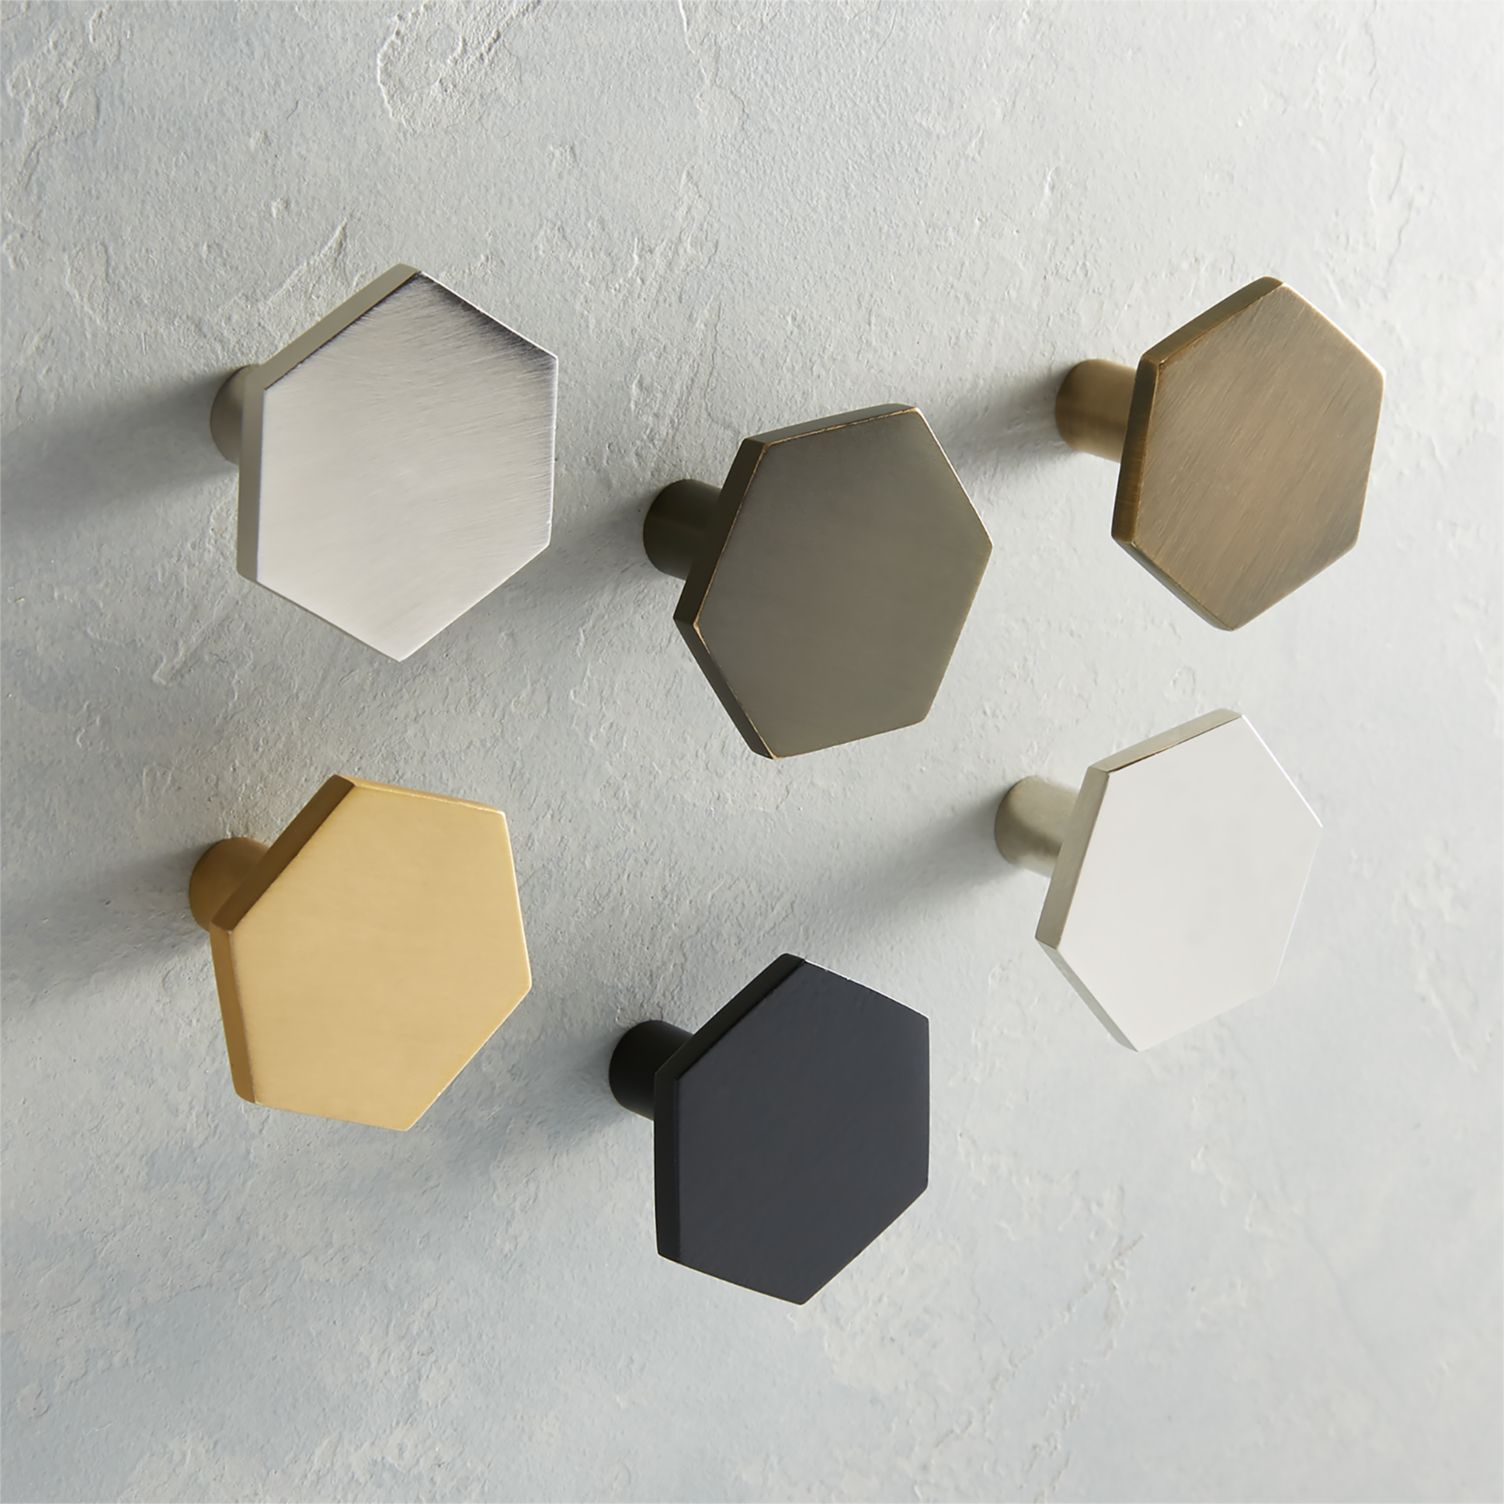 Hexagon cabinet knobs from CB2